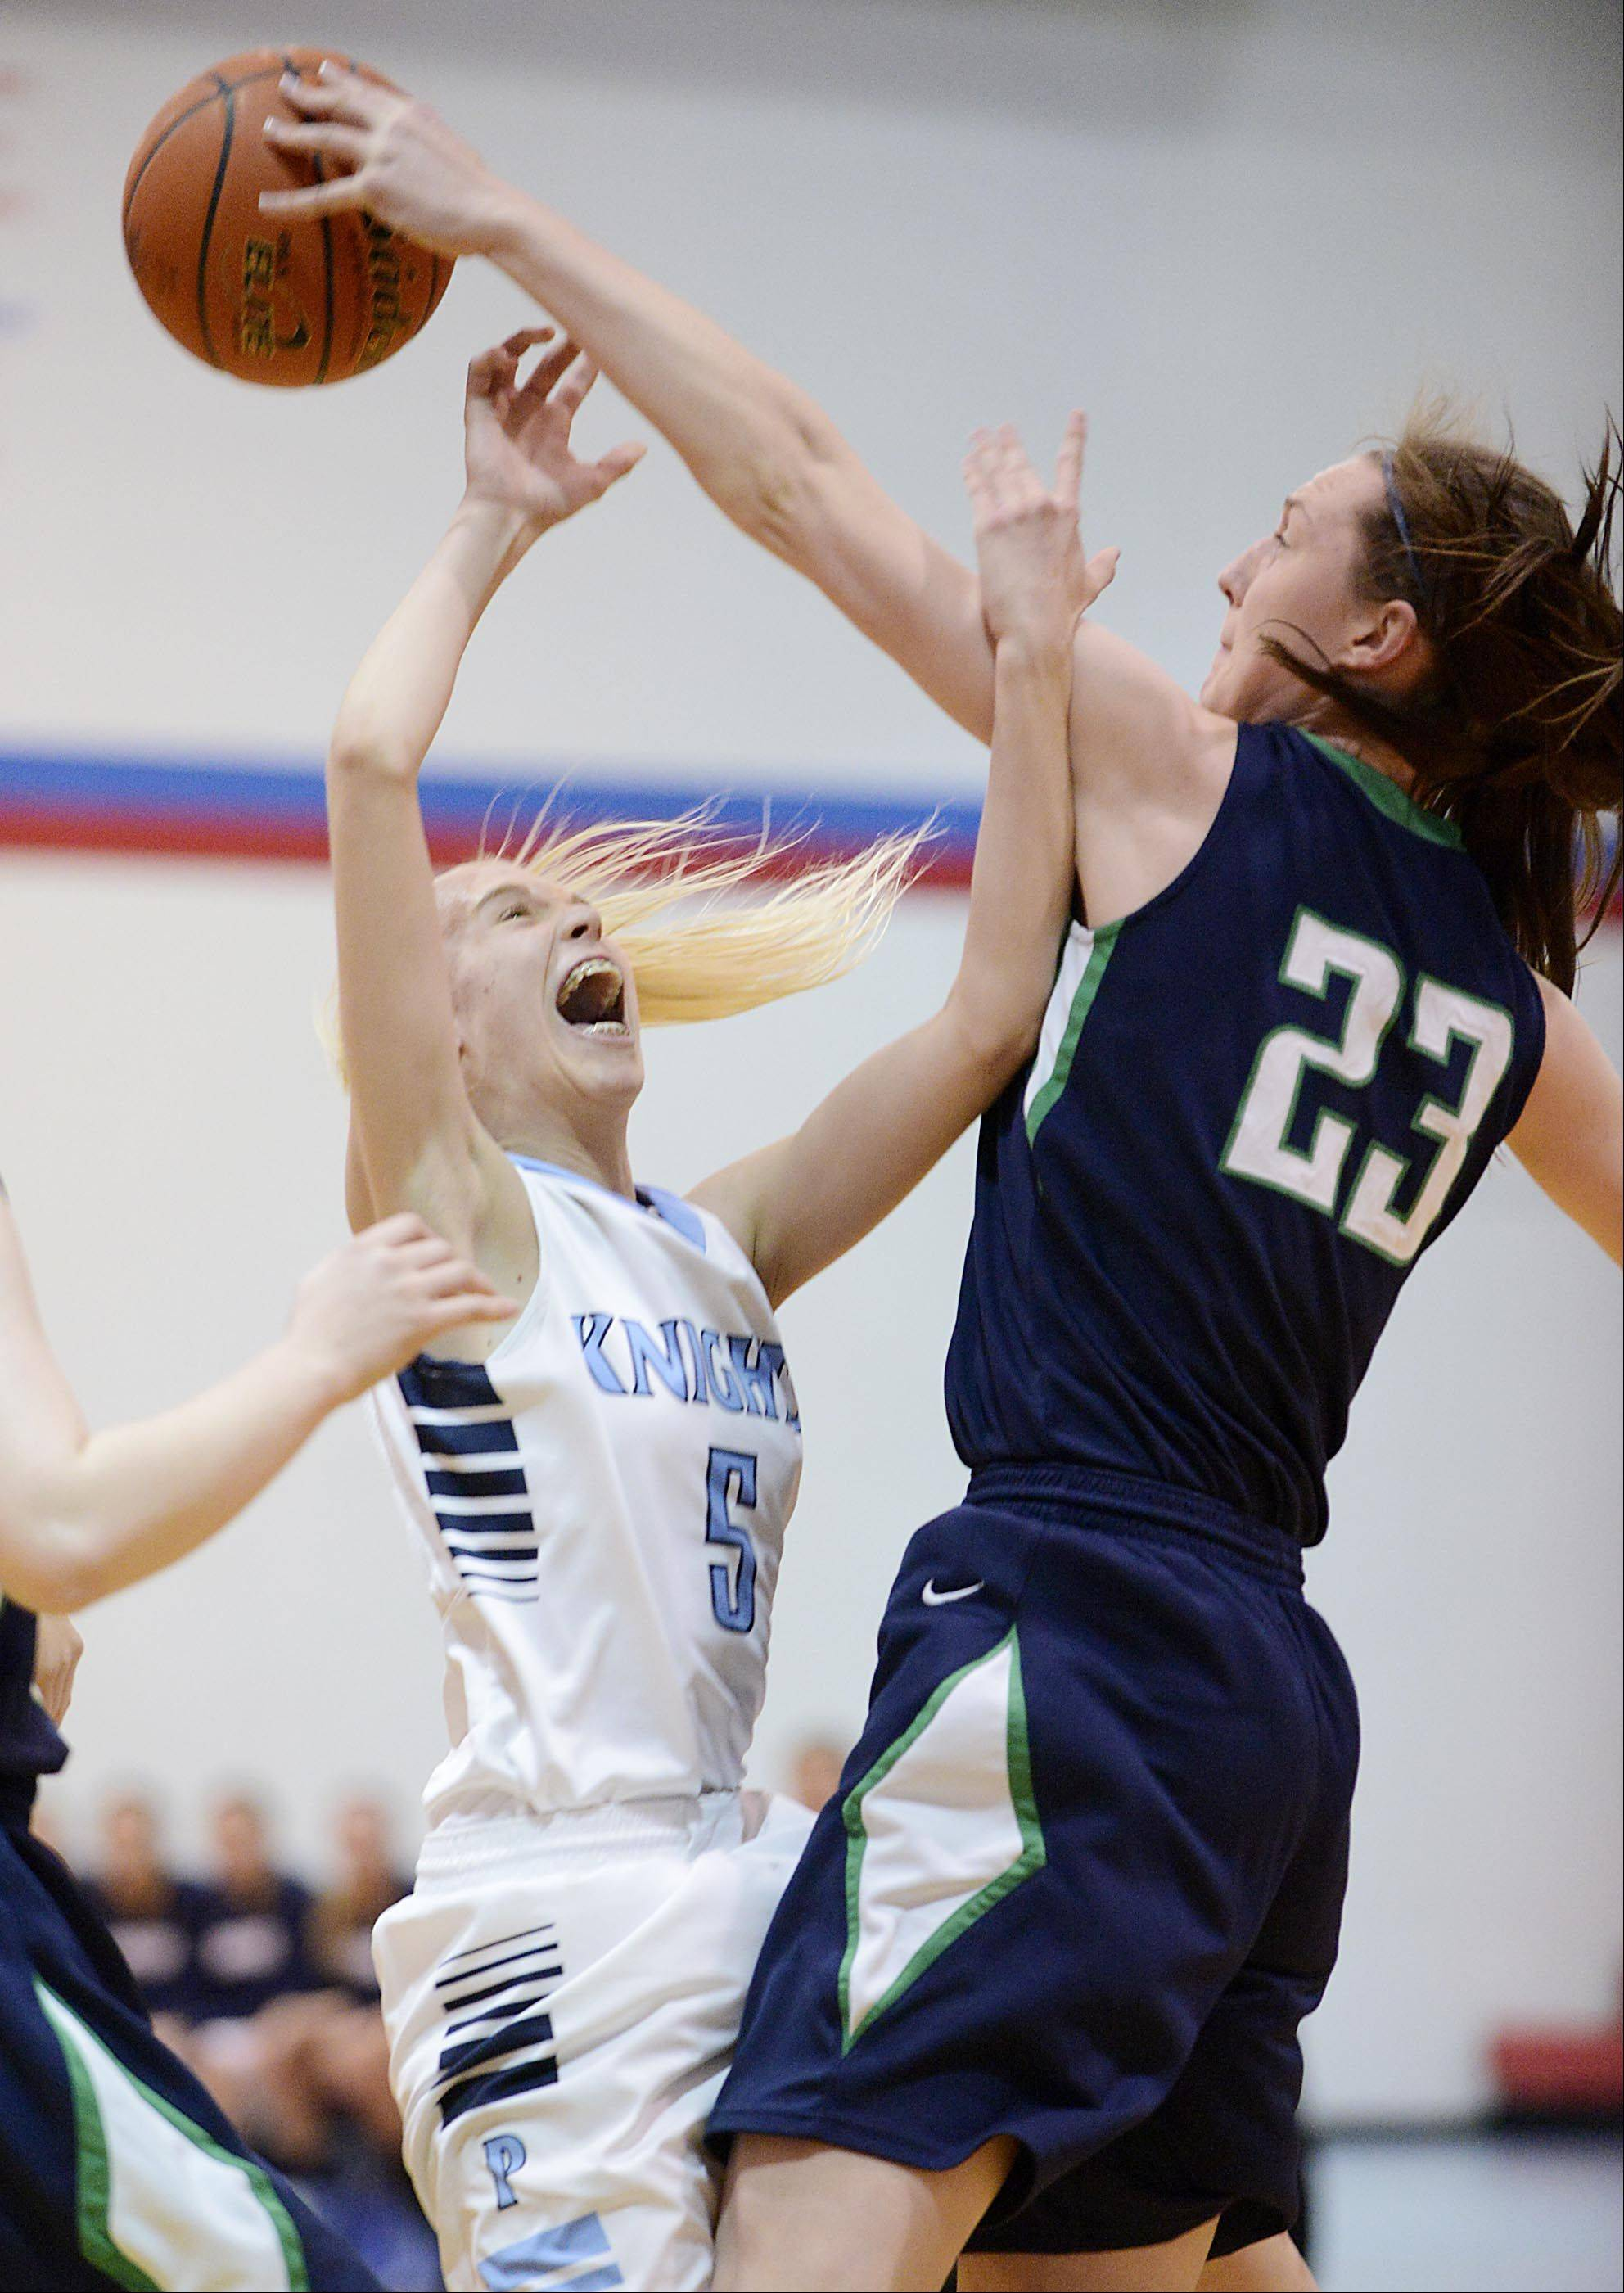 Prospect's Haley Will has her shot blocked by New Trier's Jeanne Boehm in the 31st Annual Charger Classic in the championship game of the 31st Annual Charger Classic at Dundee-Crown on Monday.